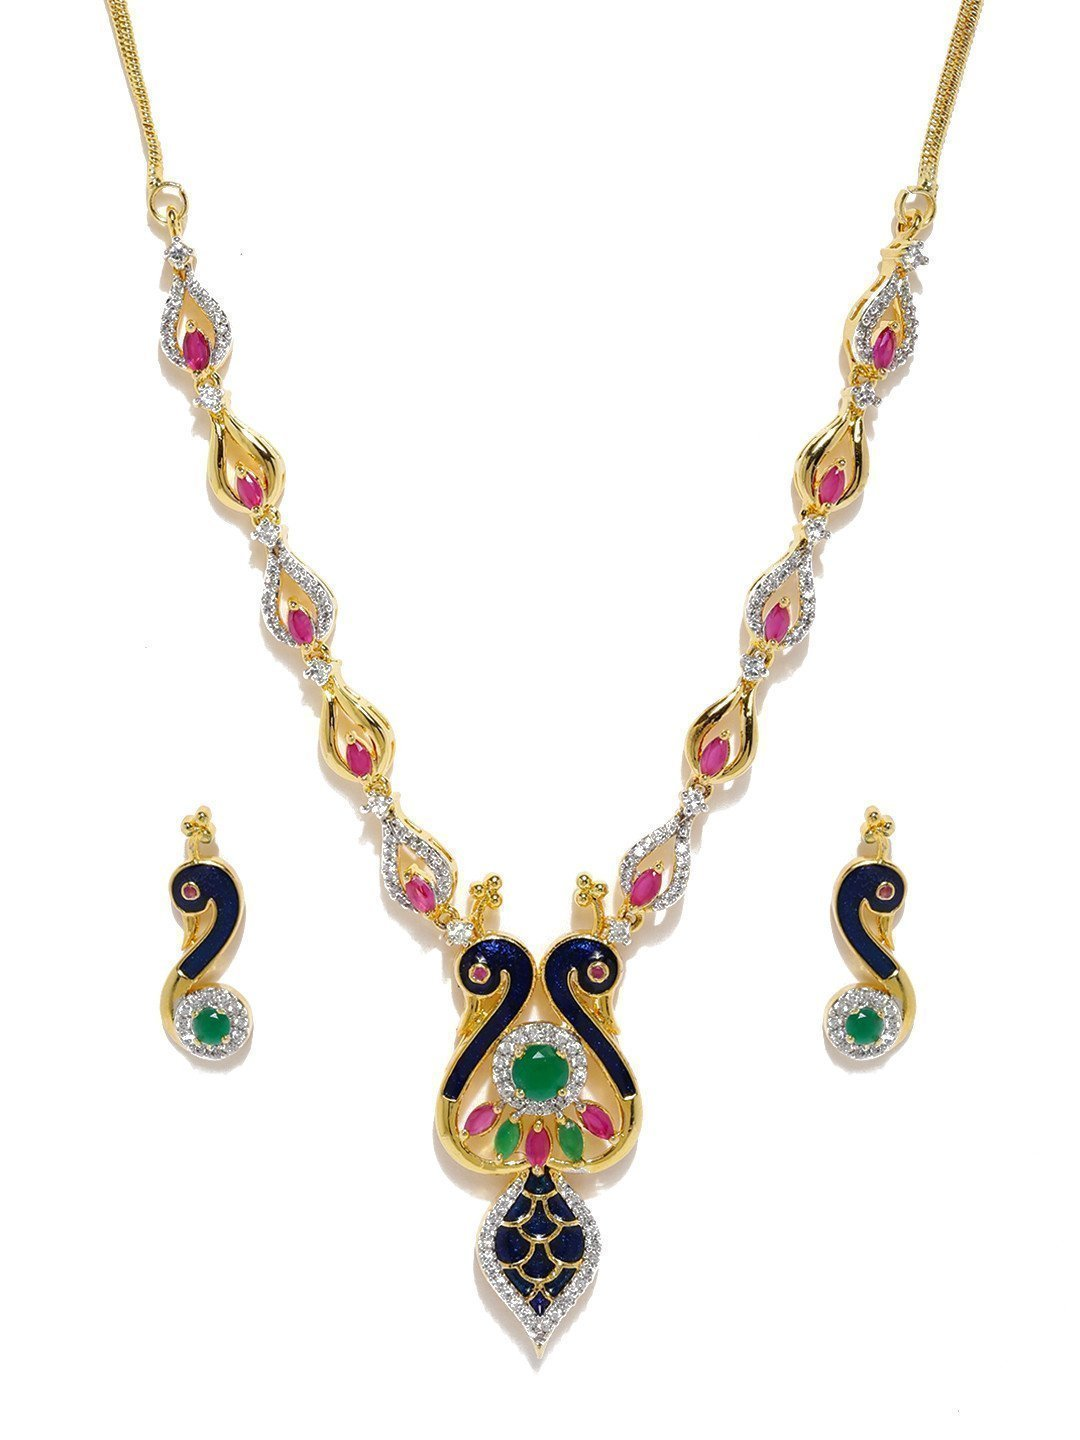 Enamelling Twin Peacock Designer Cubic Zirconia Necklace Set - Zpfk5867